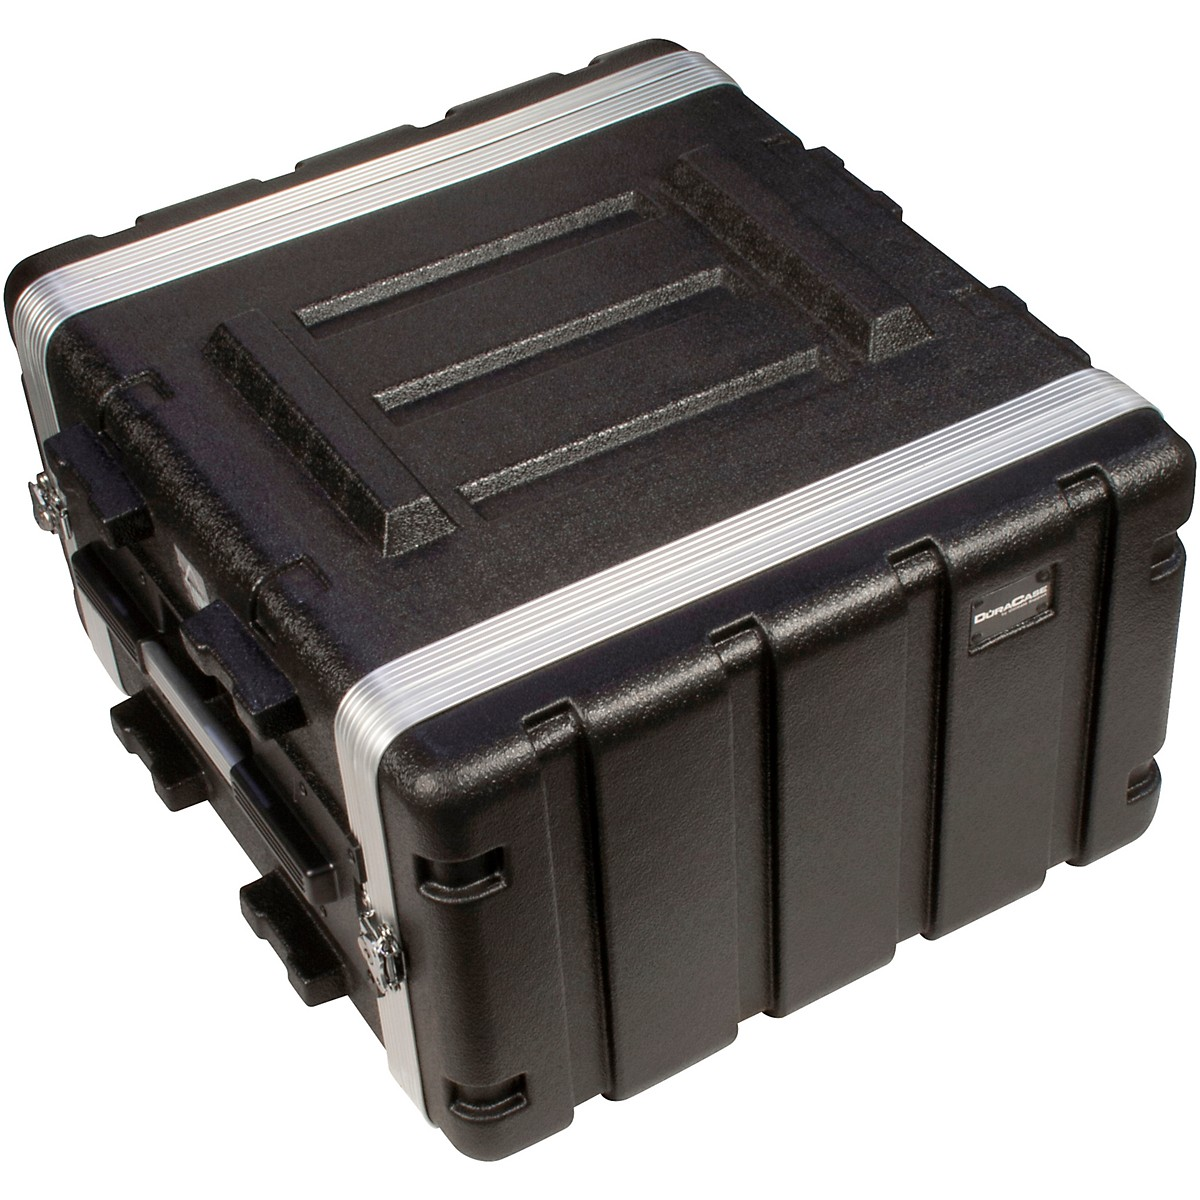 Ultimate Support DuraCase UR-6L Portable 6-Space Rackmount Case